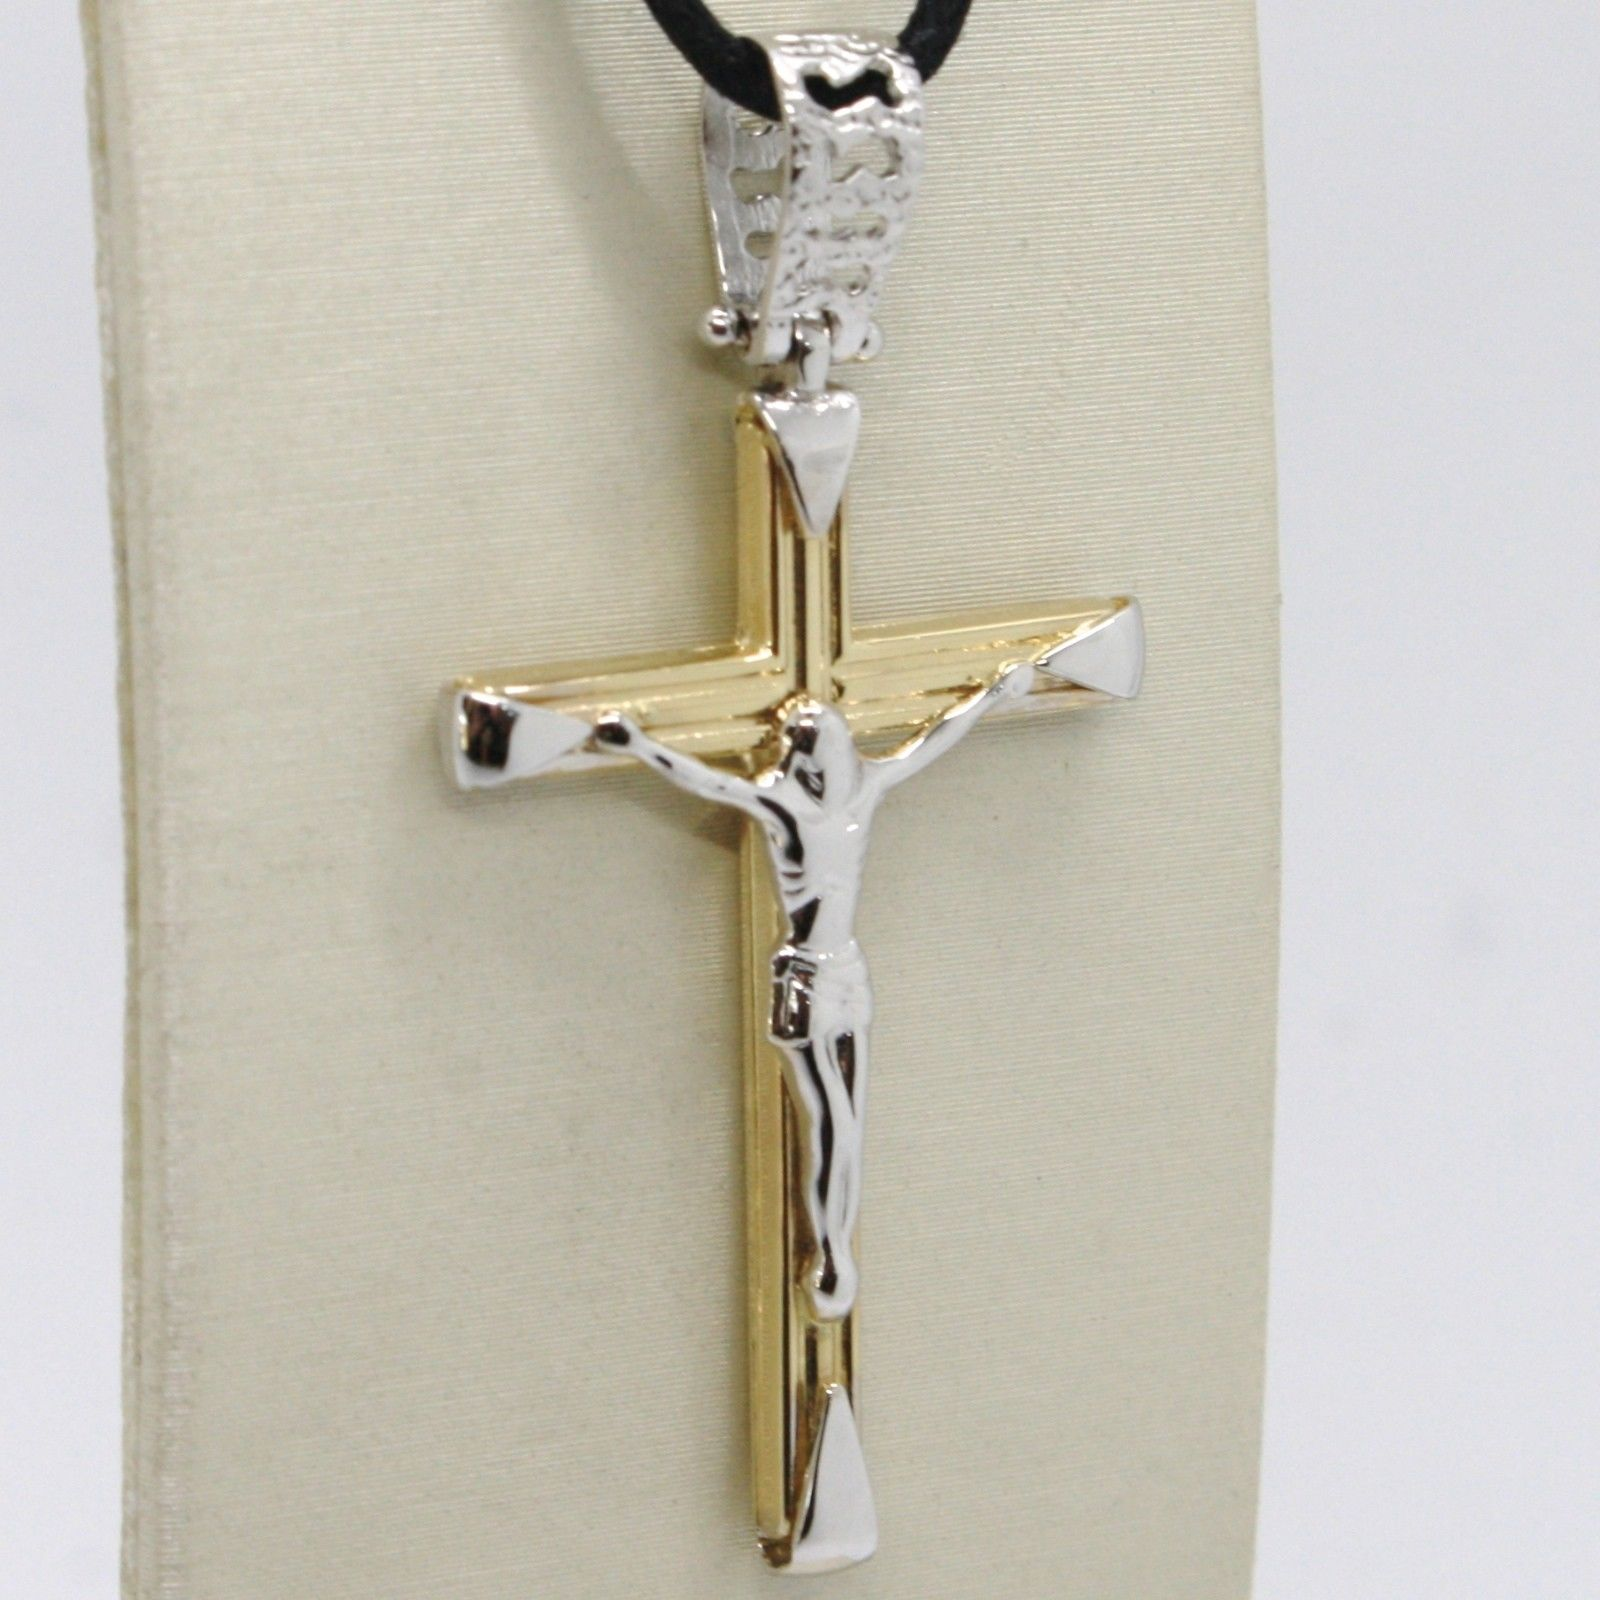 18K YELLOW WHITE GOLD JESUS CROSS PENDANT, 4.2 CM, FINELY WORKED, MADE IN ITALY